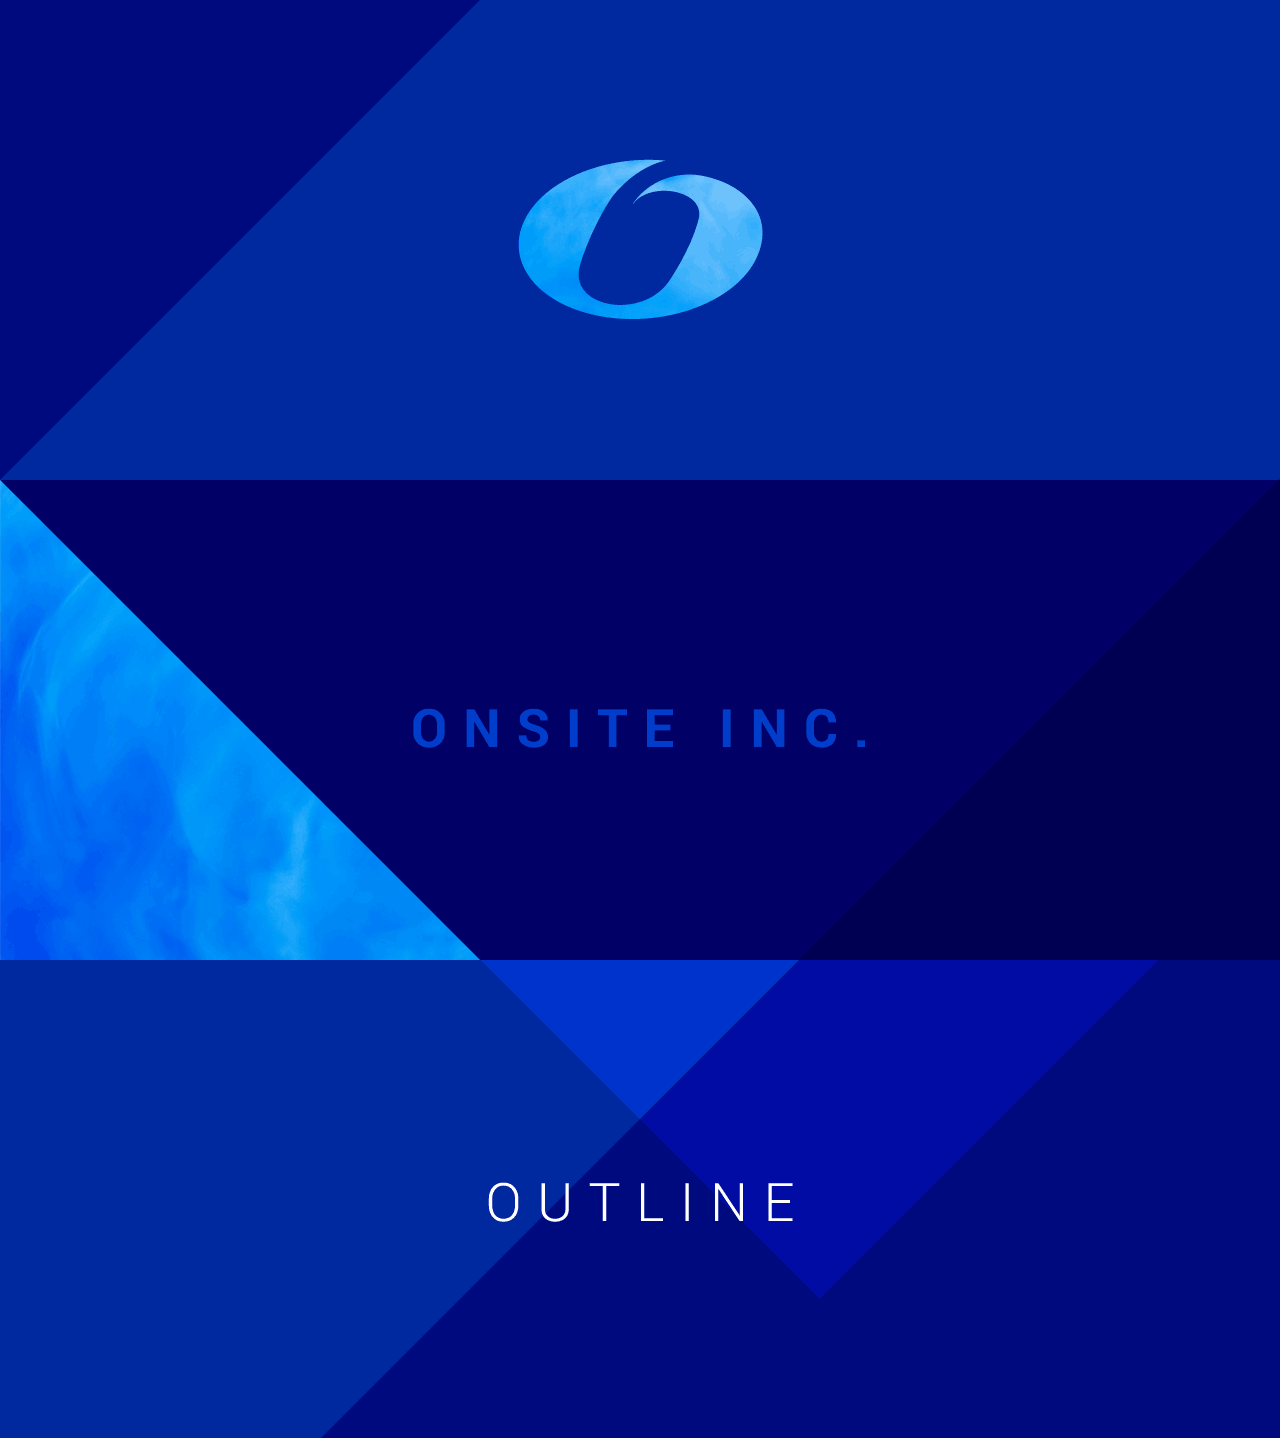 ONSITE INC. OUTLINE